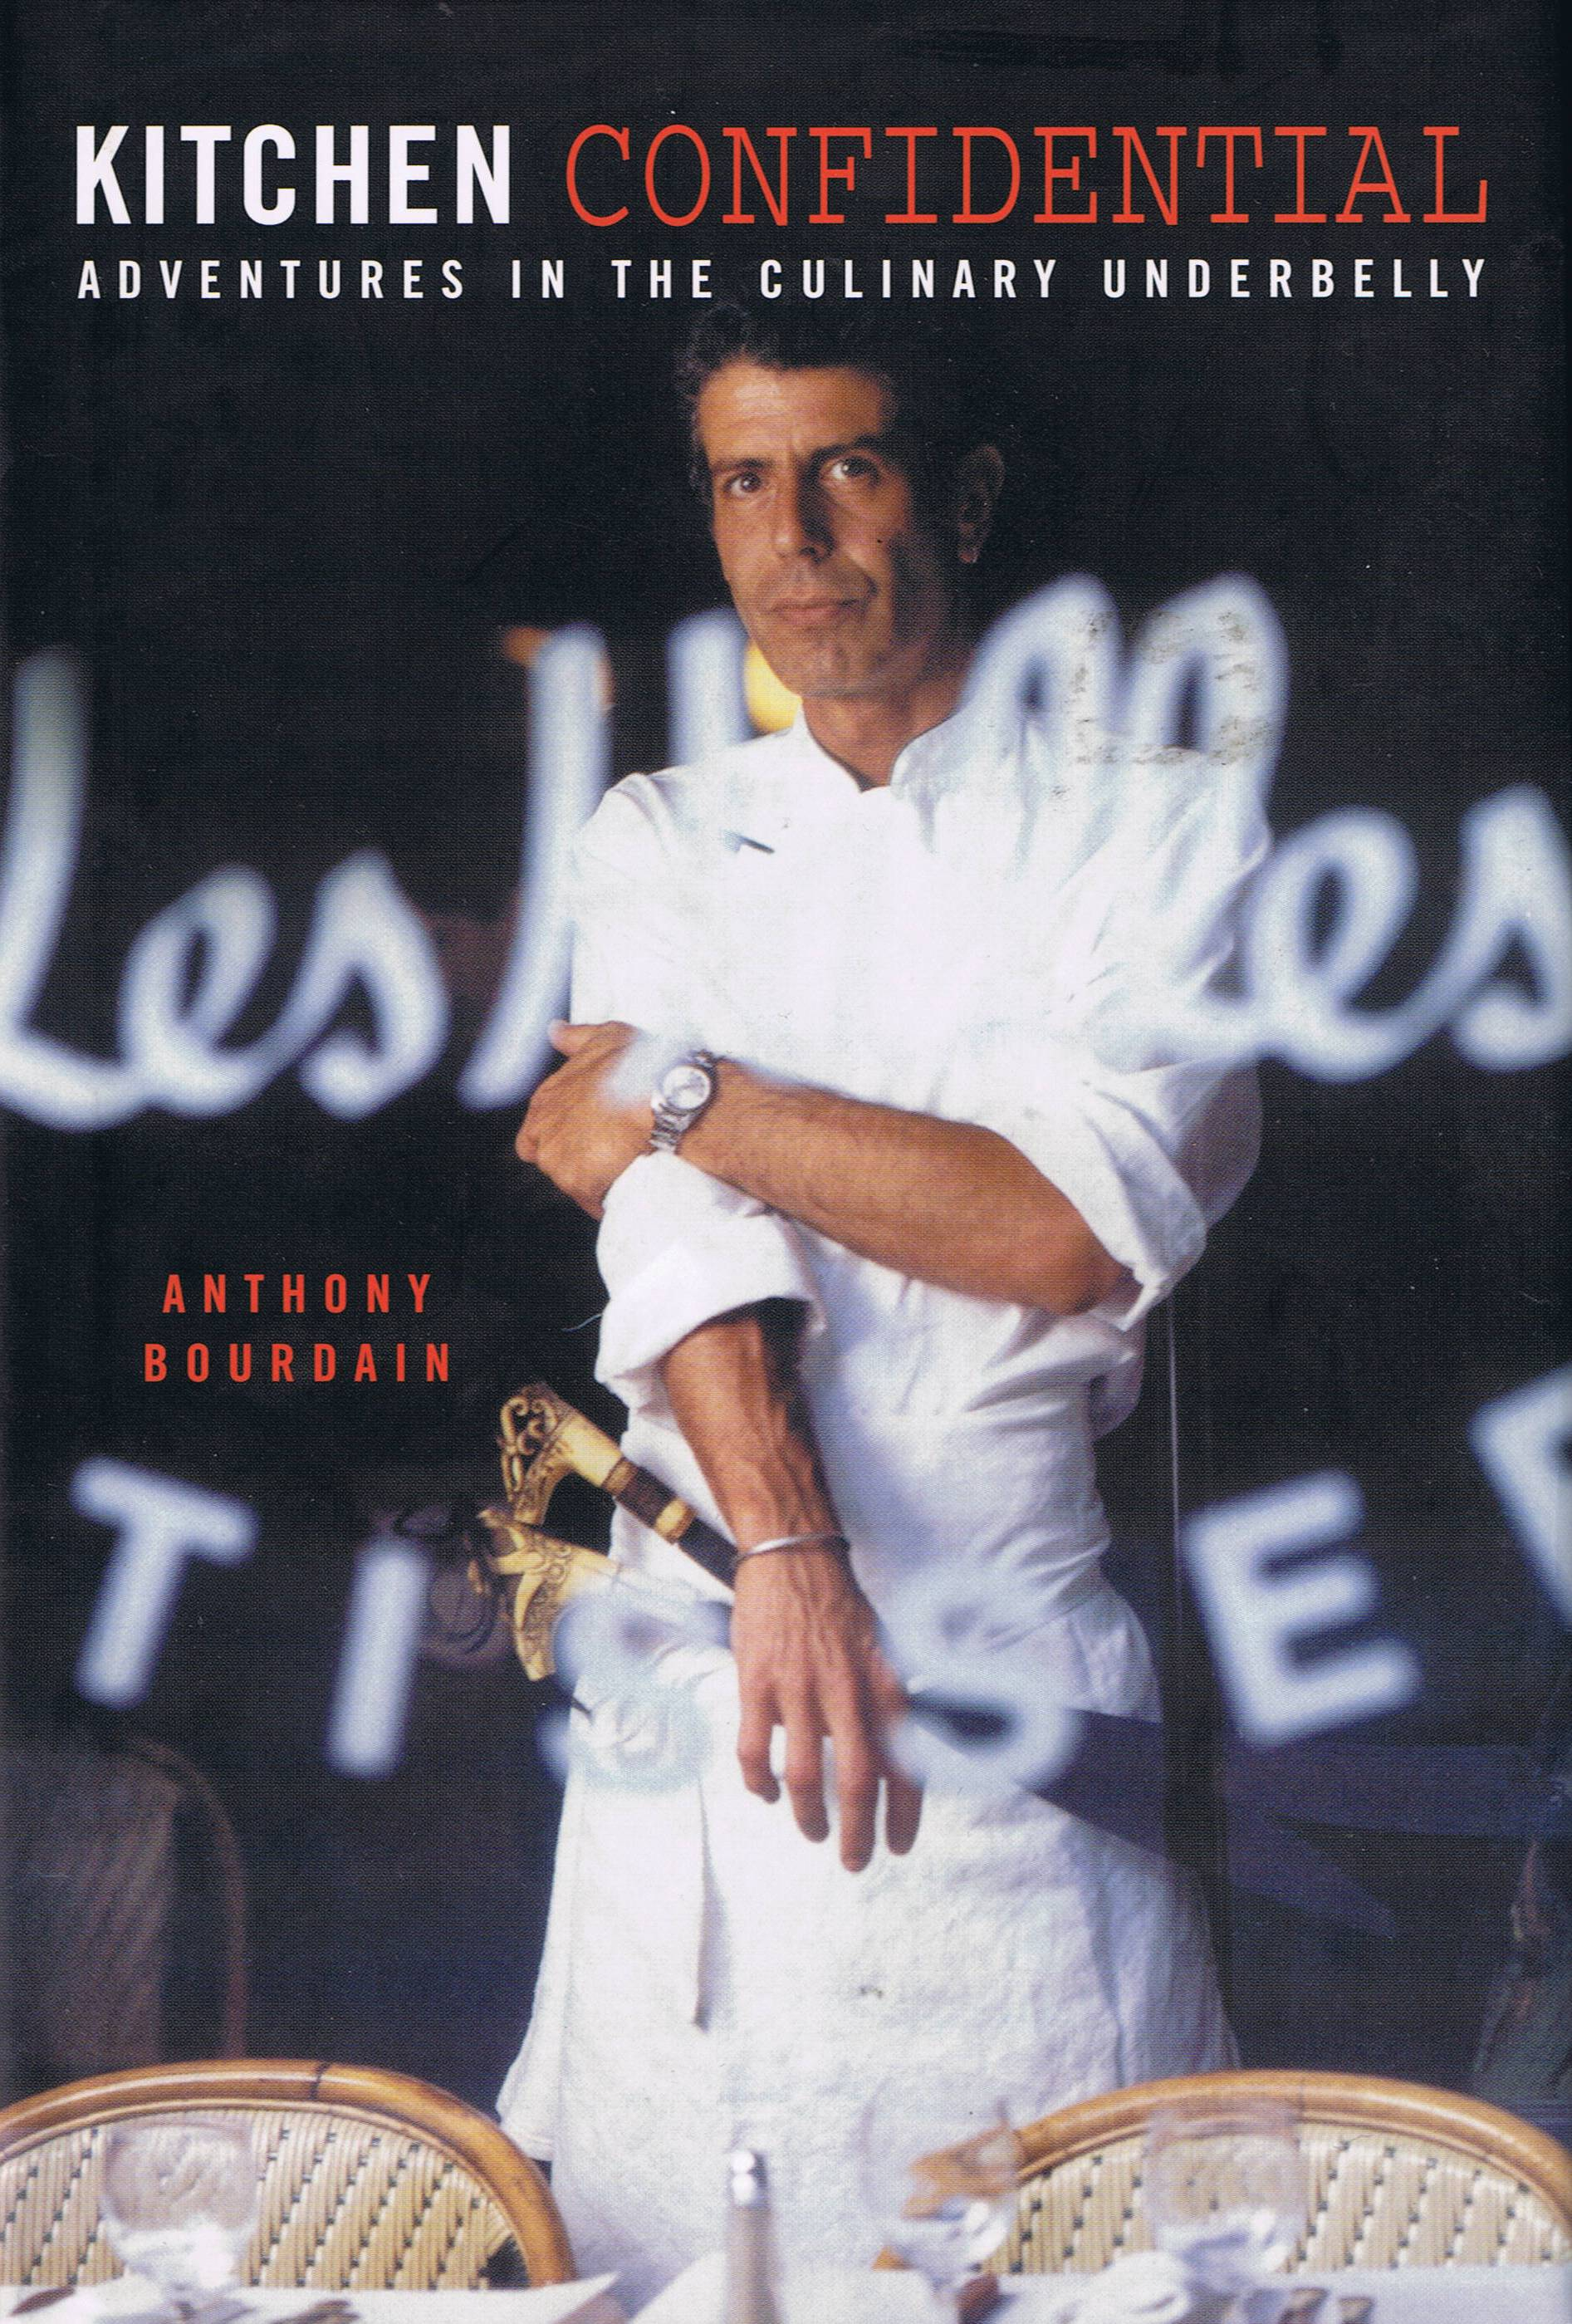 Kitchen Confidential by Anthony Bourdain book cover